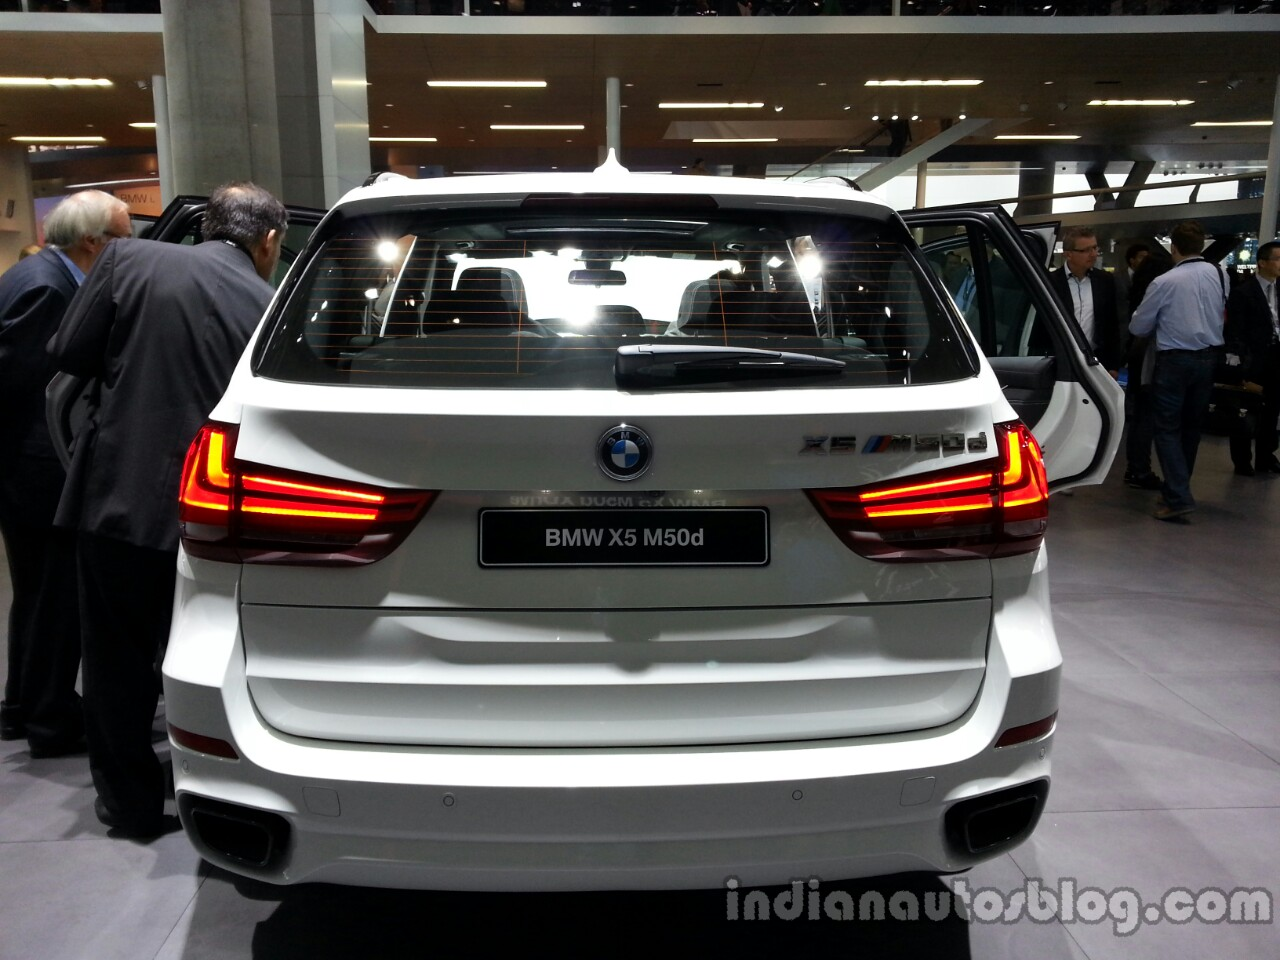 Rear of the 2014 BMW X5 M50d